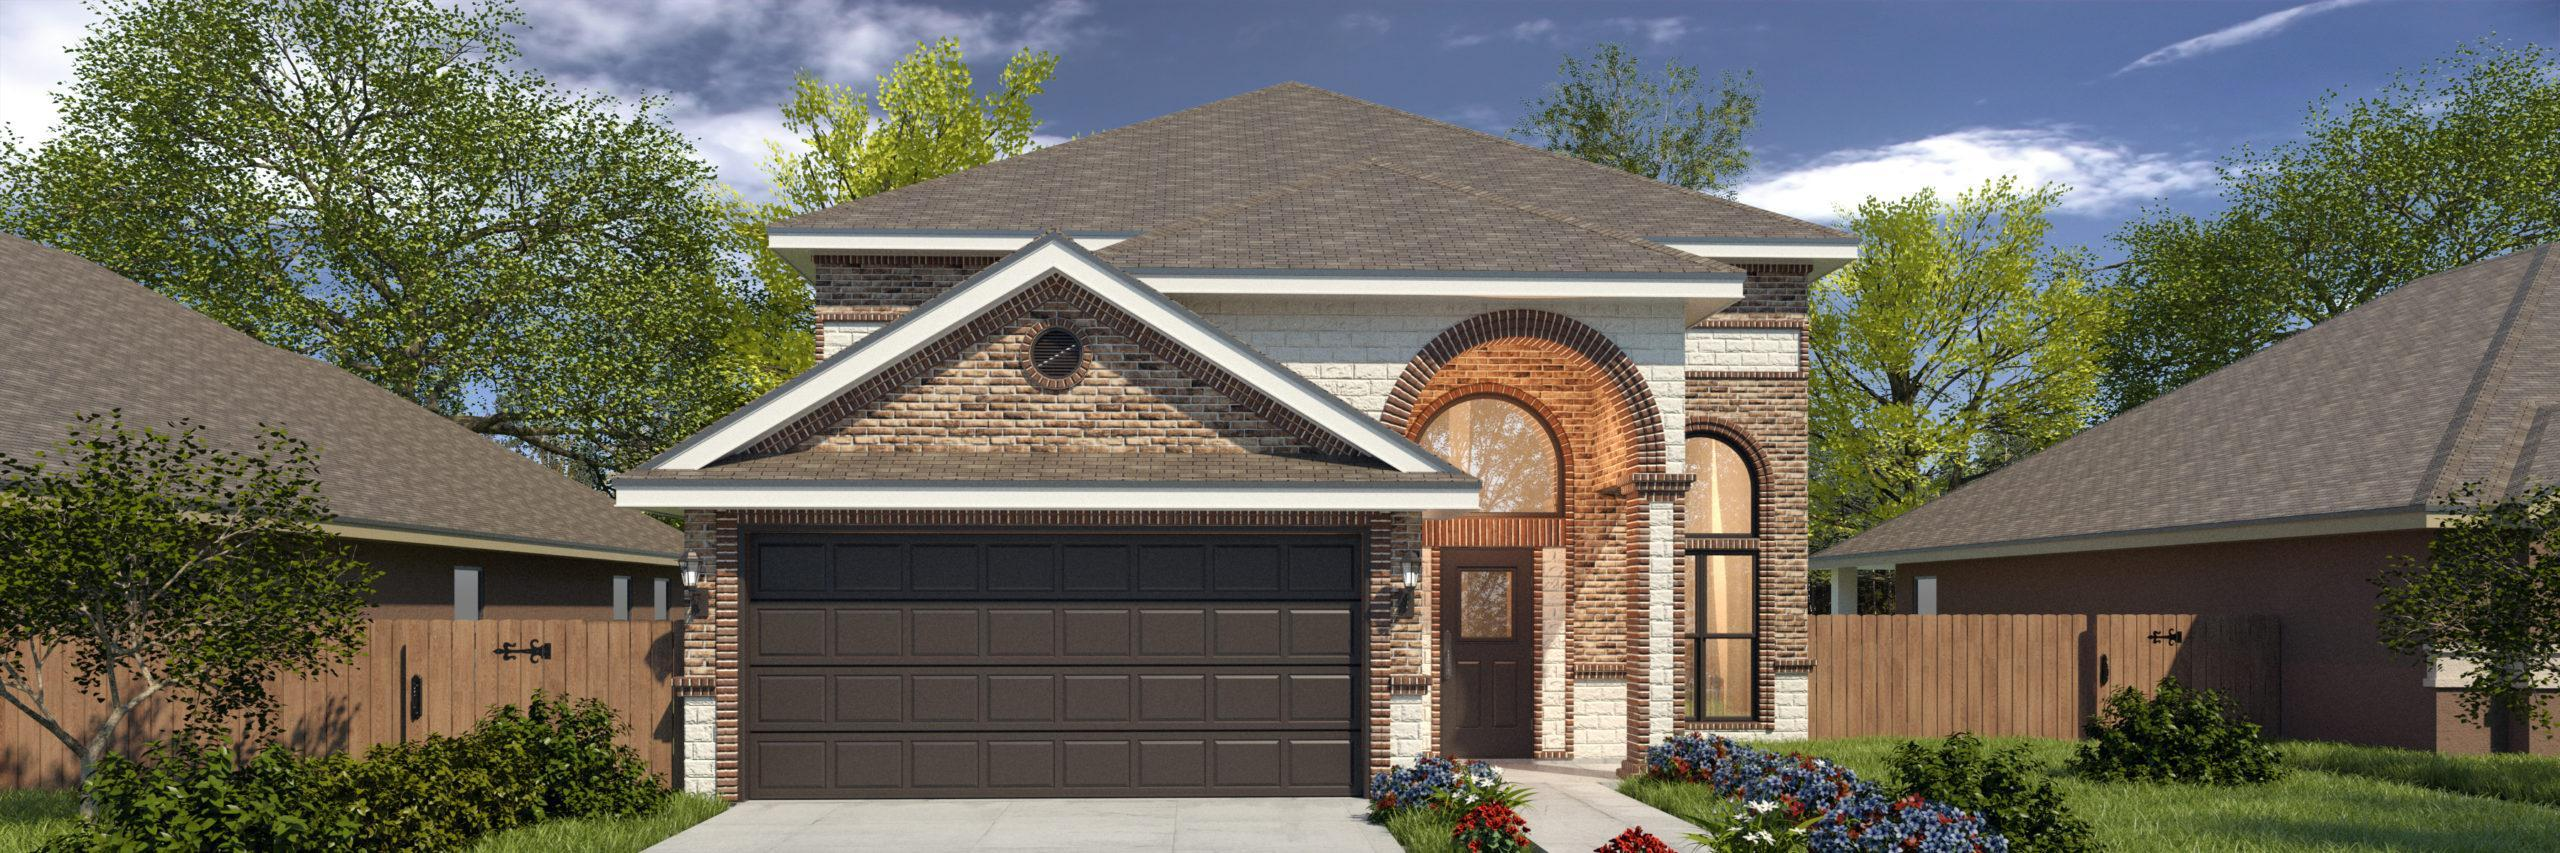 Exterior featured in the San Cristobal II Hmstd 2 By WestWind Homes in Rio Grande Valley, TX